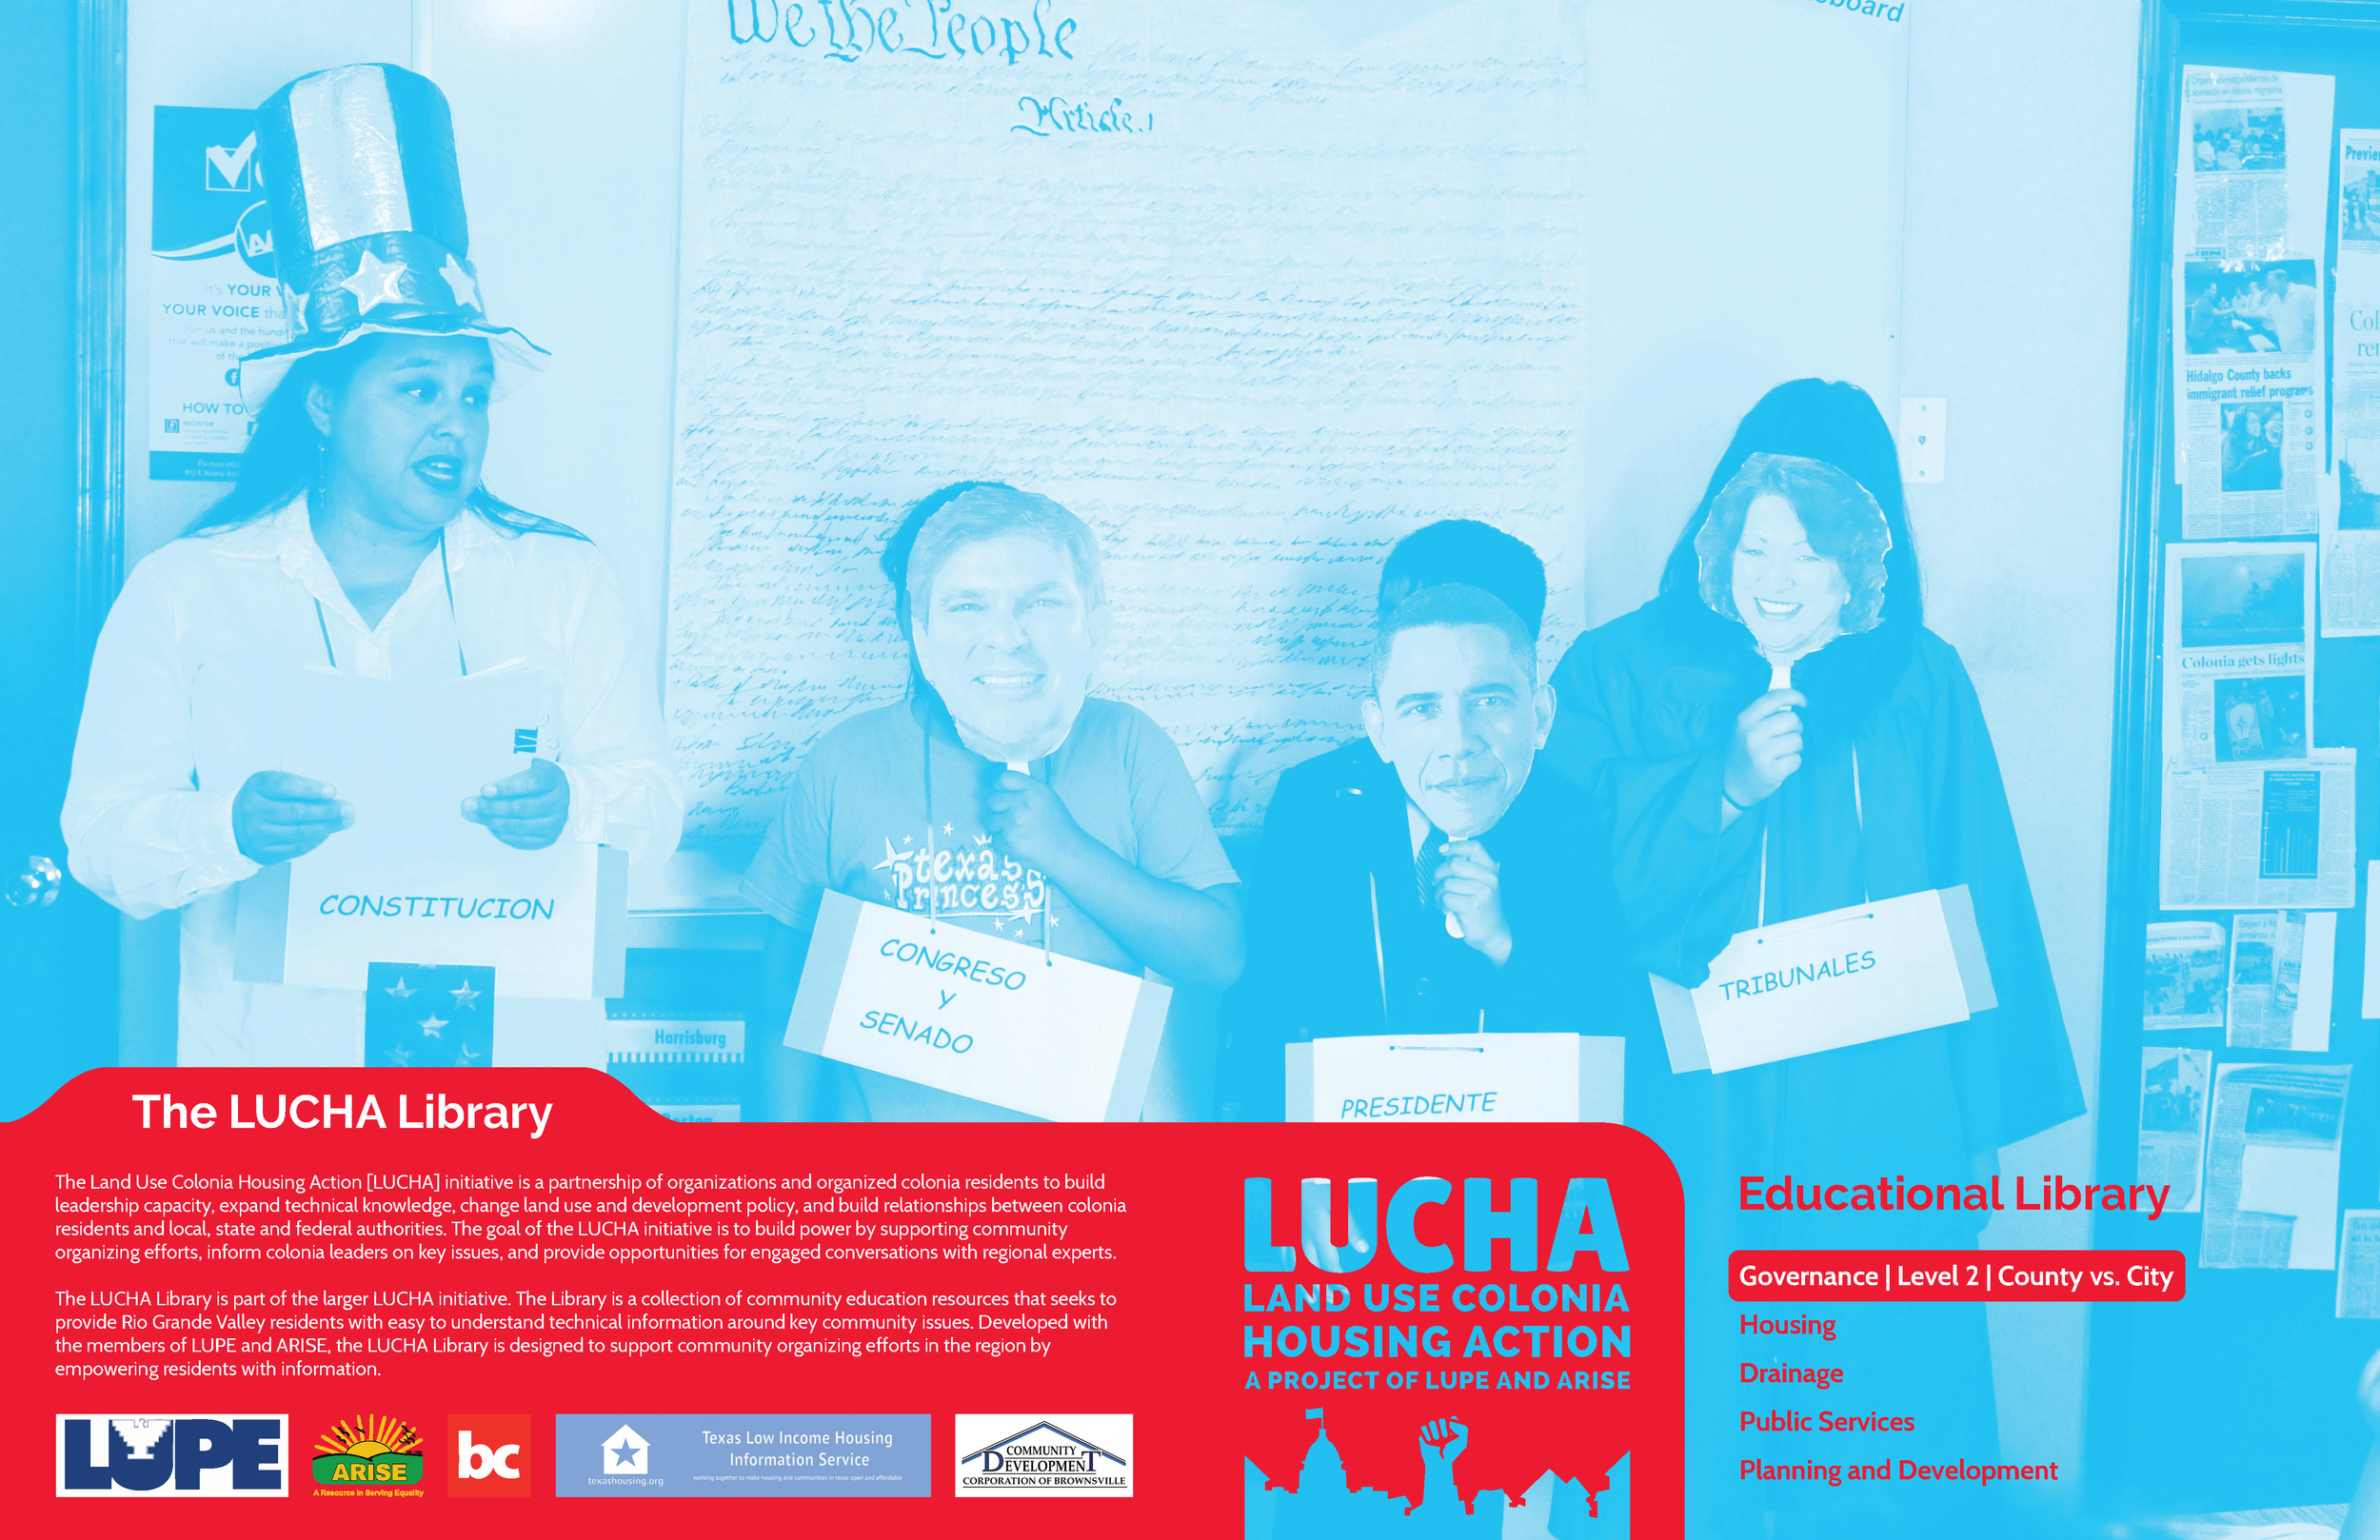 lucha-governance-level-2-english-posters (2)_Page_1.png